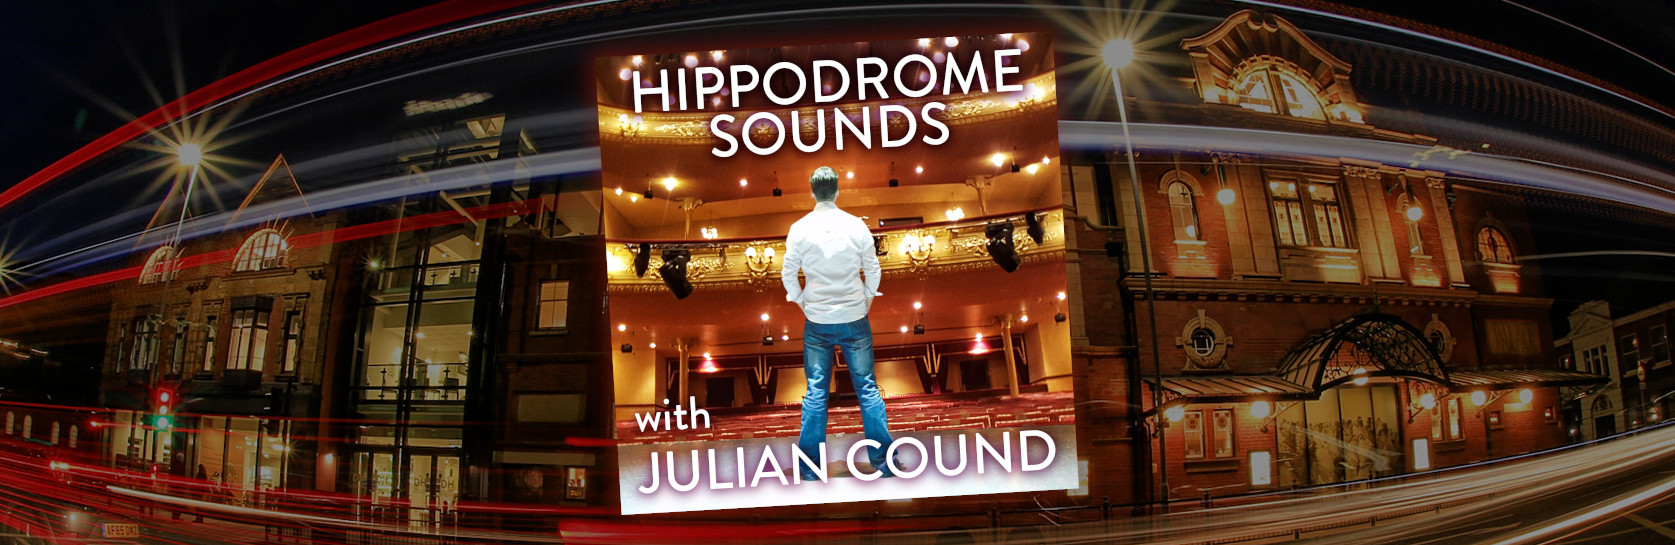 Hippodrome Sounds with Julian Cound - The Panto Edition